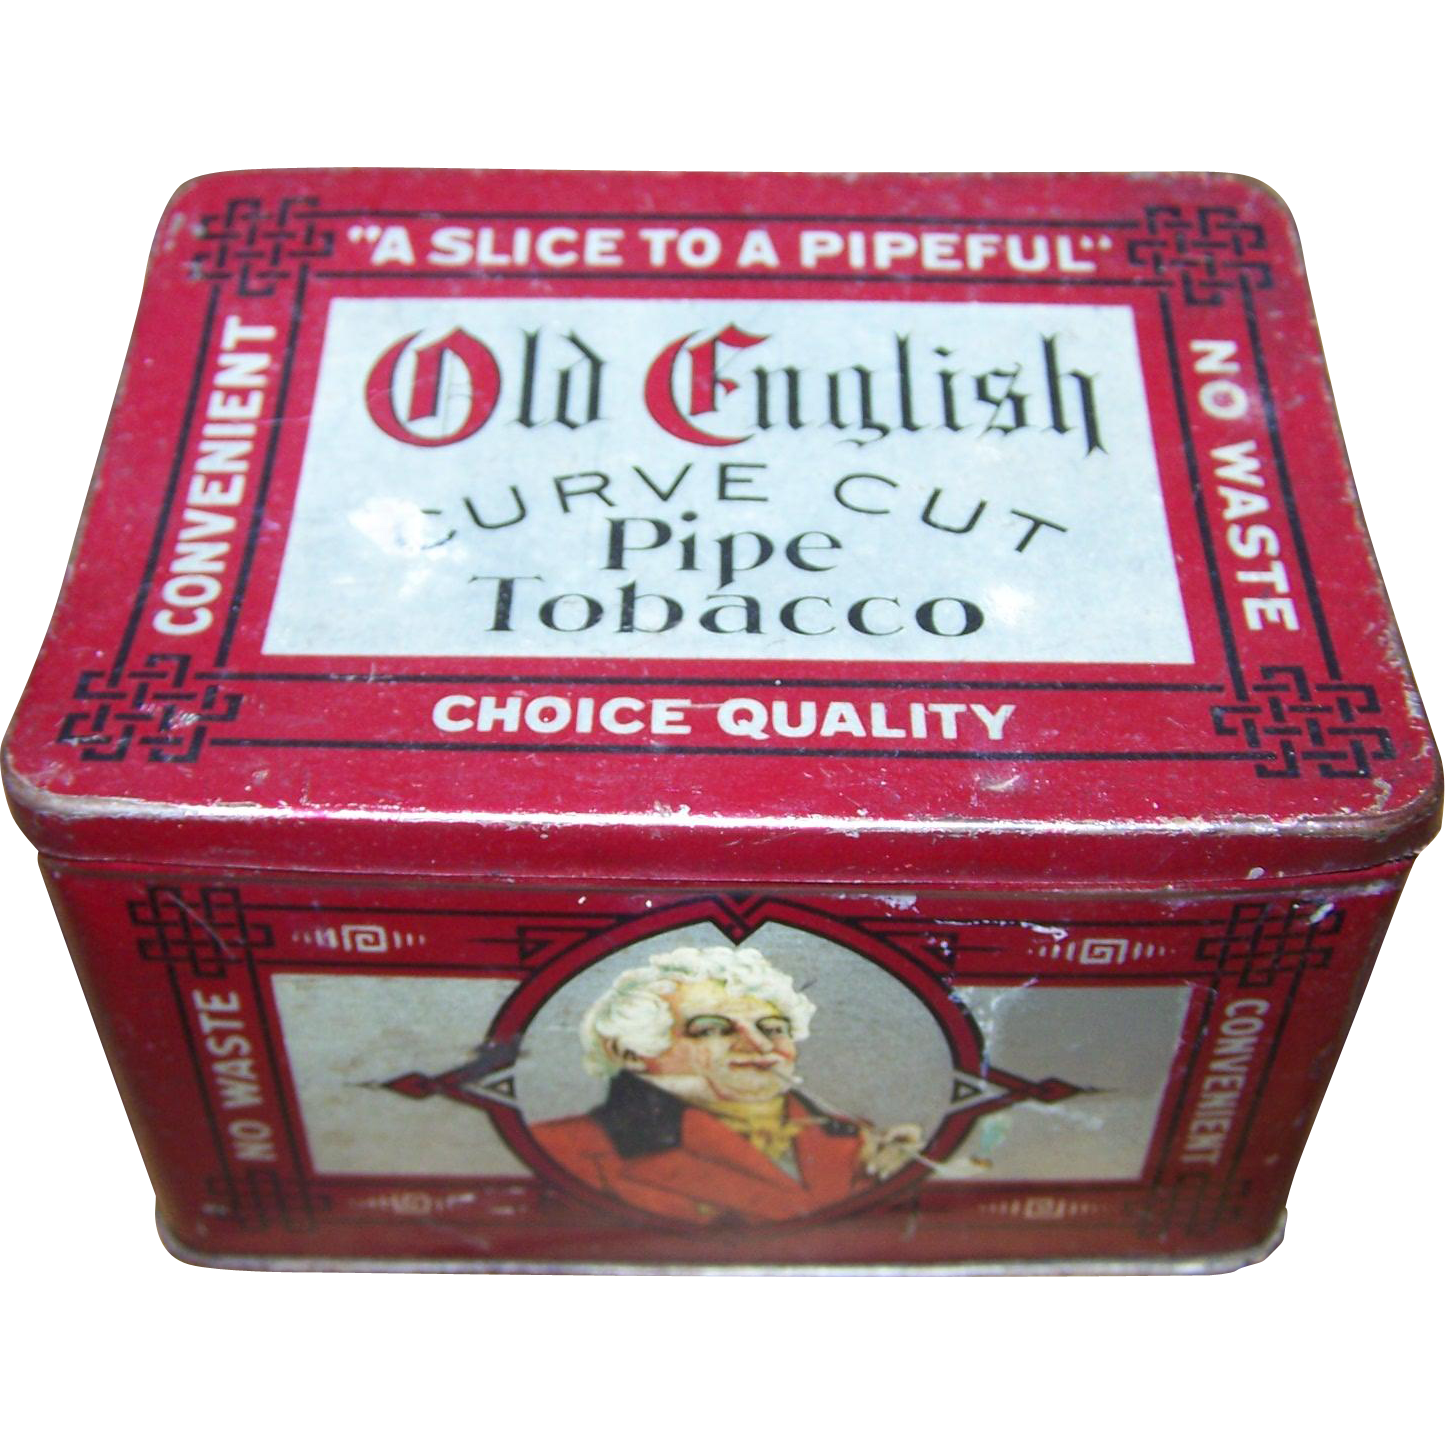 Advertising Tobacco Tin Box Old English Curve Cut Pipe Tobacco